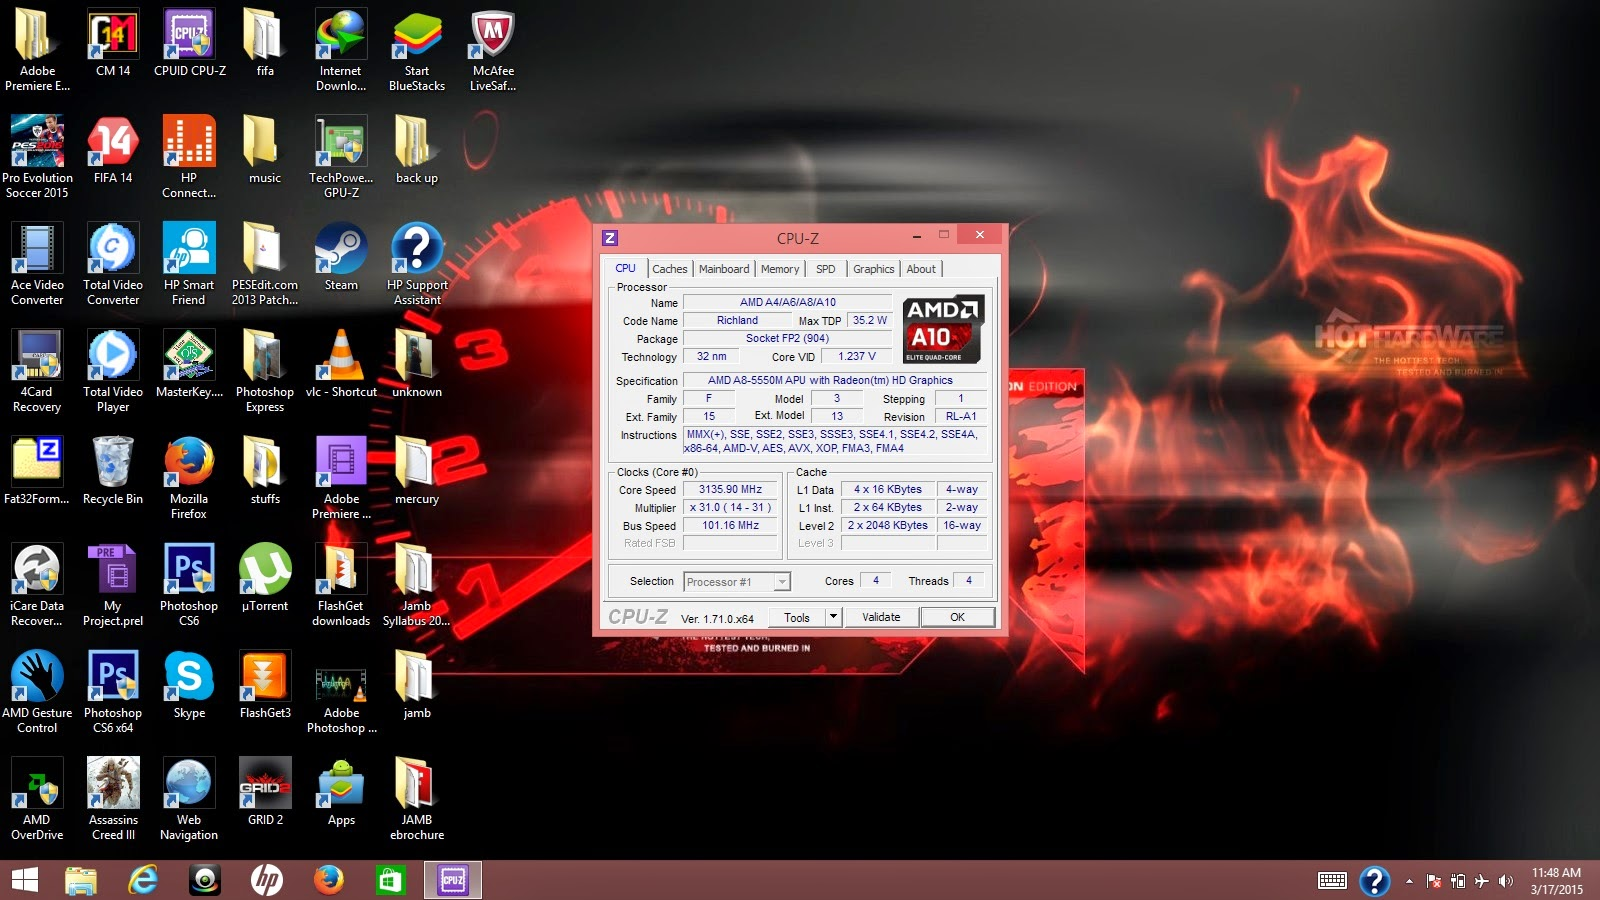 How To Overclock With Amd Overdrive